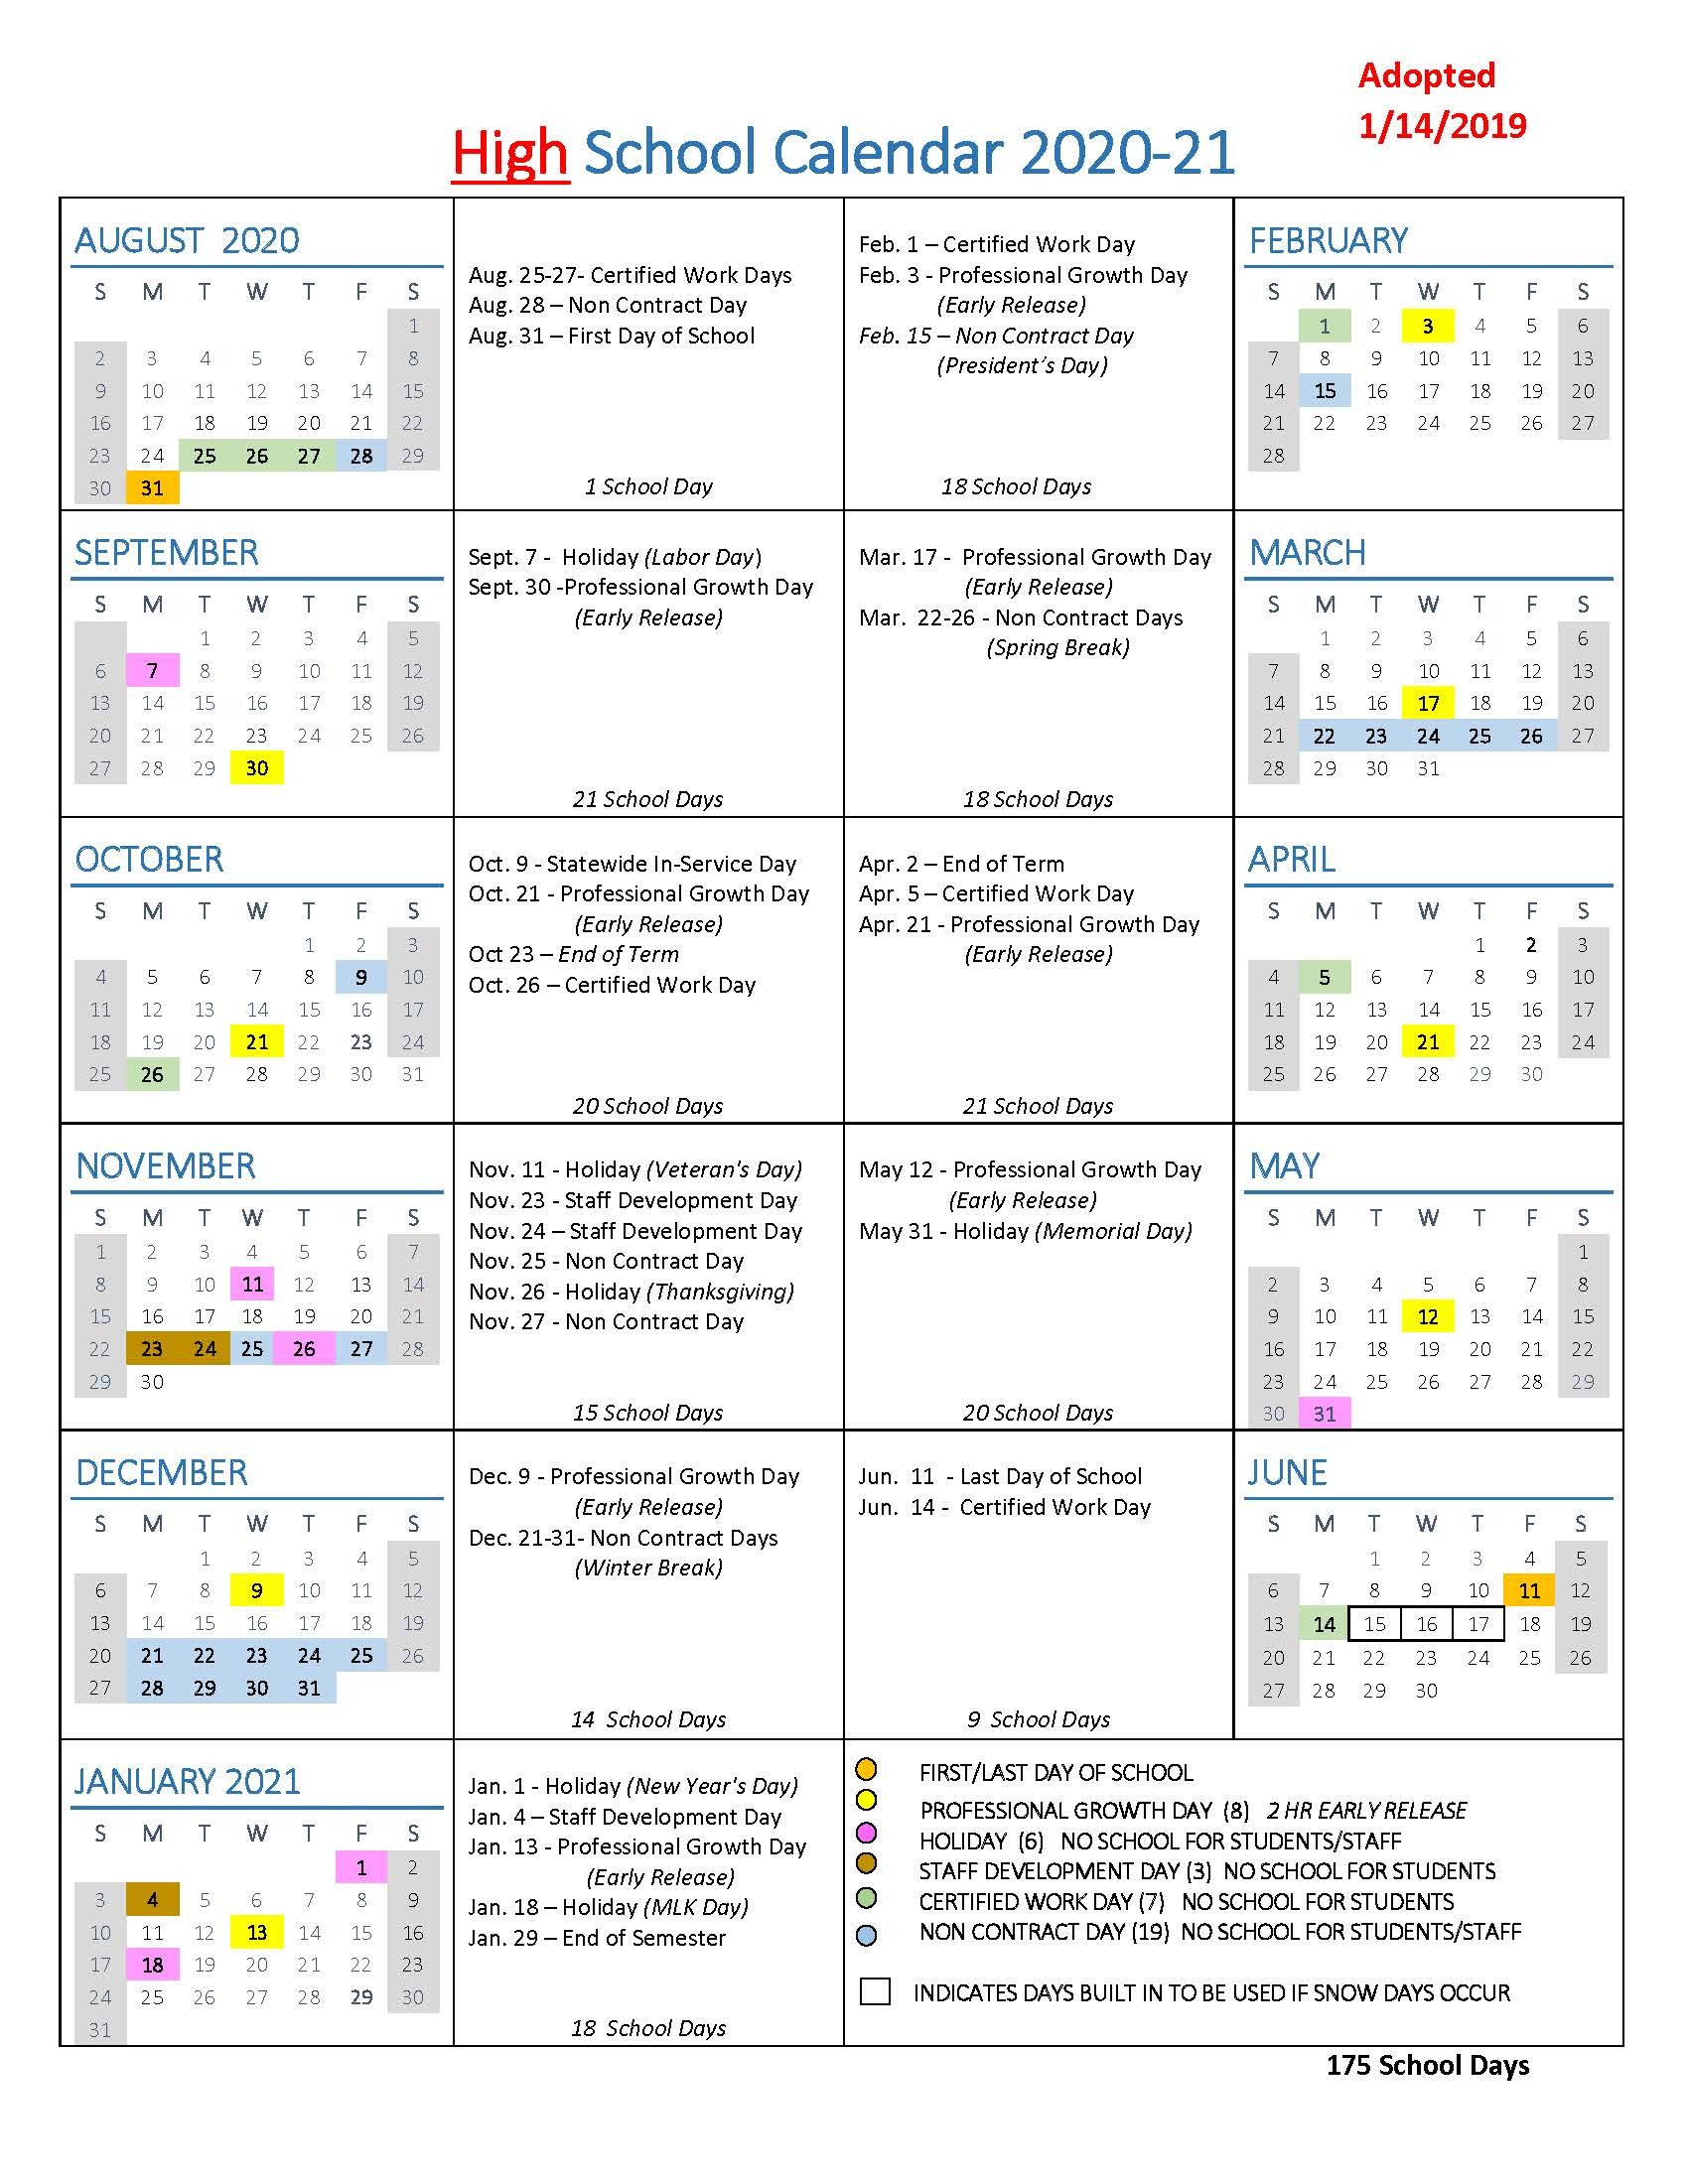 Calendar January to March 2019 Más Recientemente Liberado School Year Calendars School Year Calendars Of Calendar January to March 2019 Más Caliente Connellsville area Sd